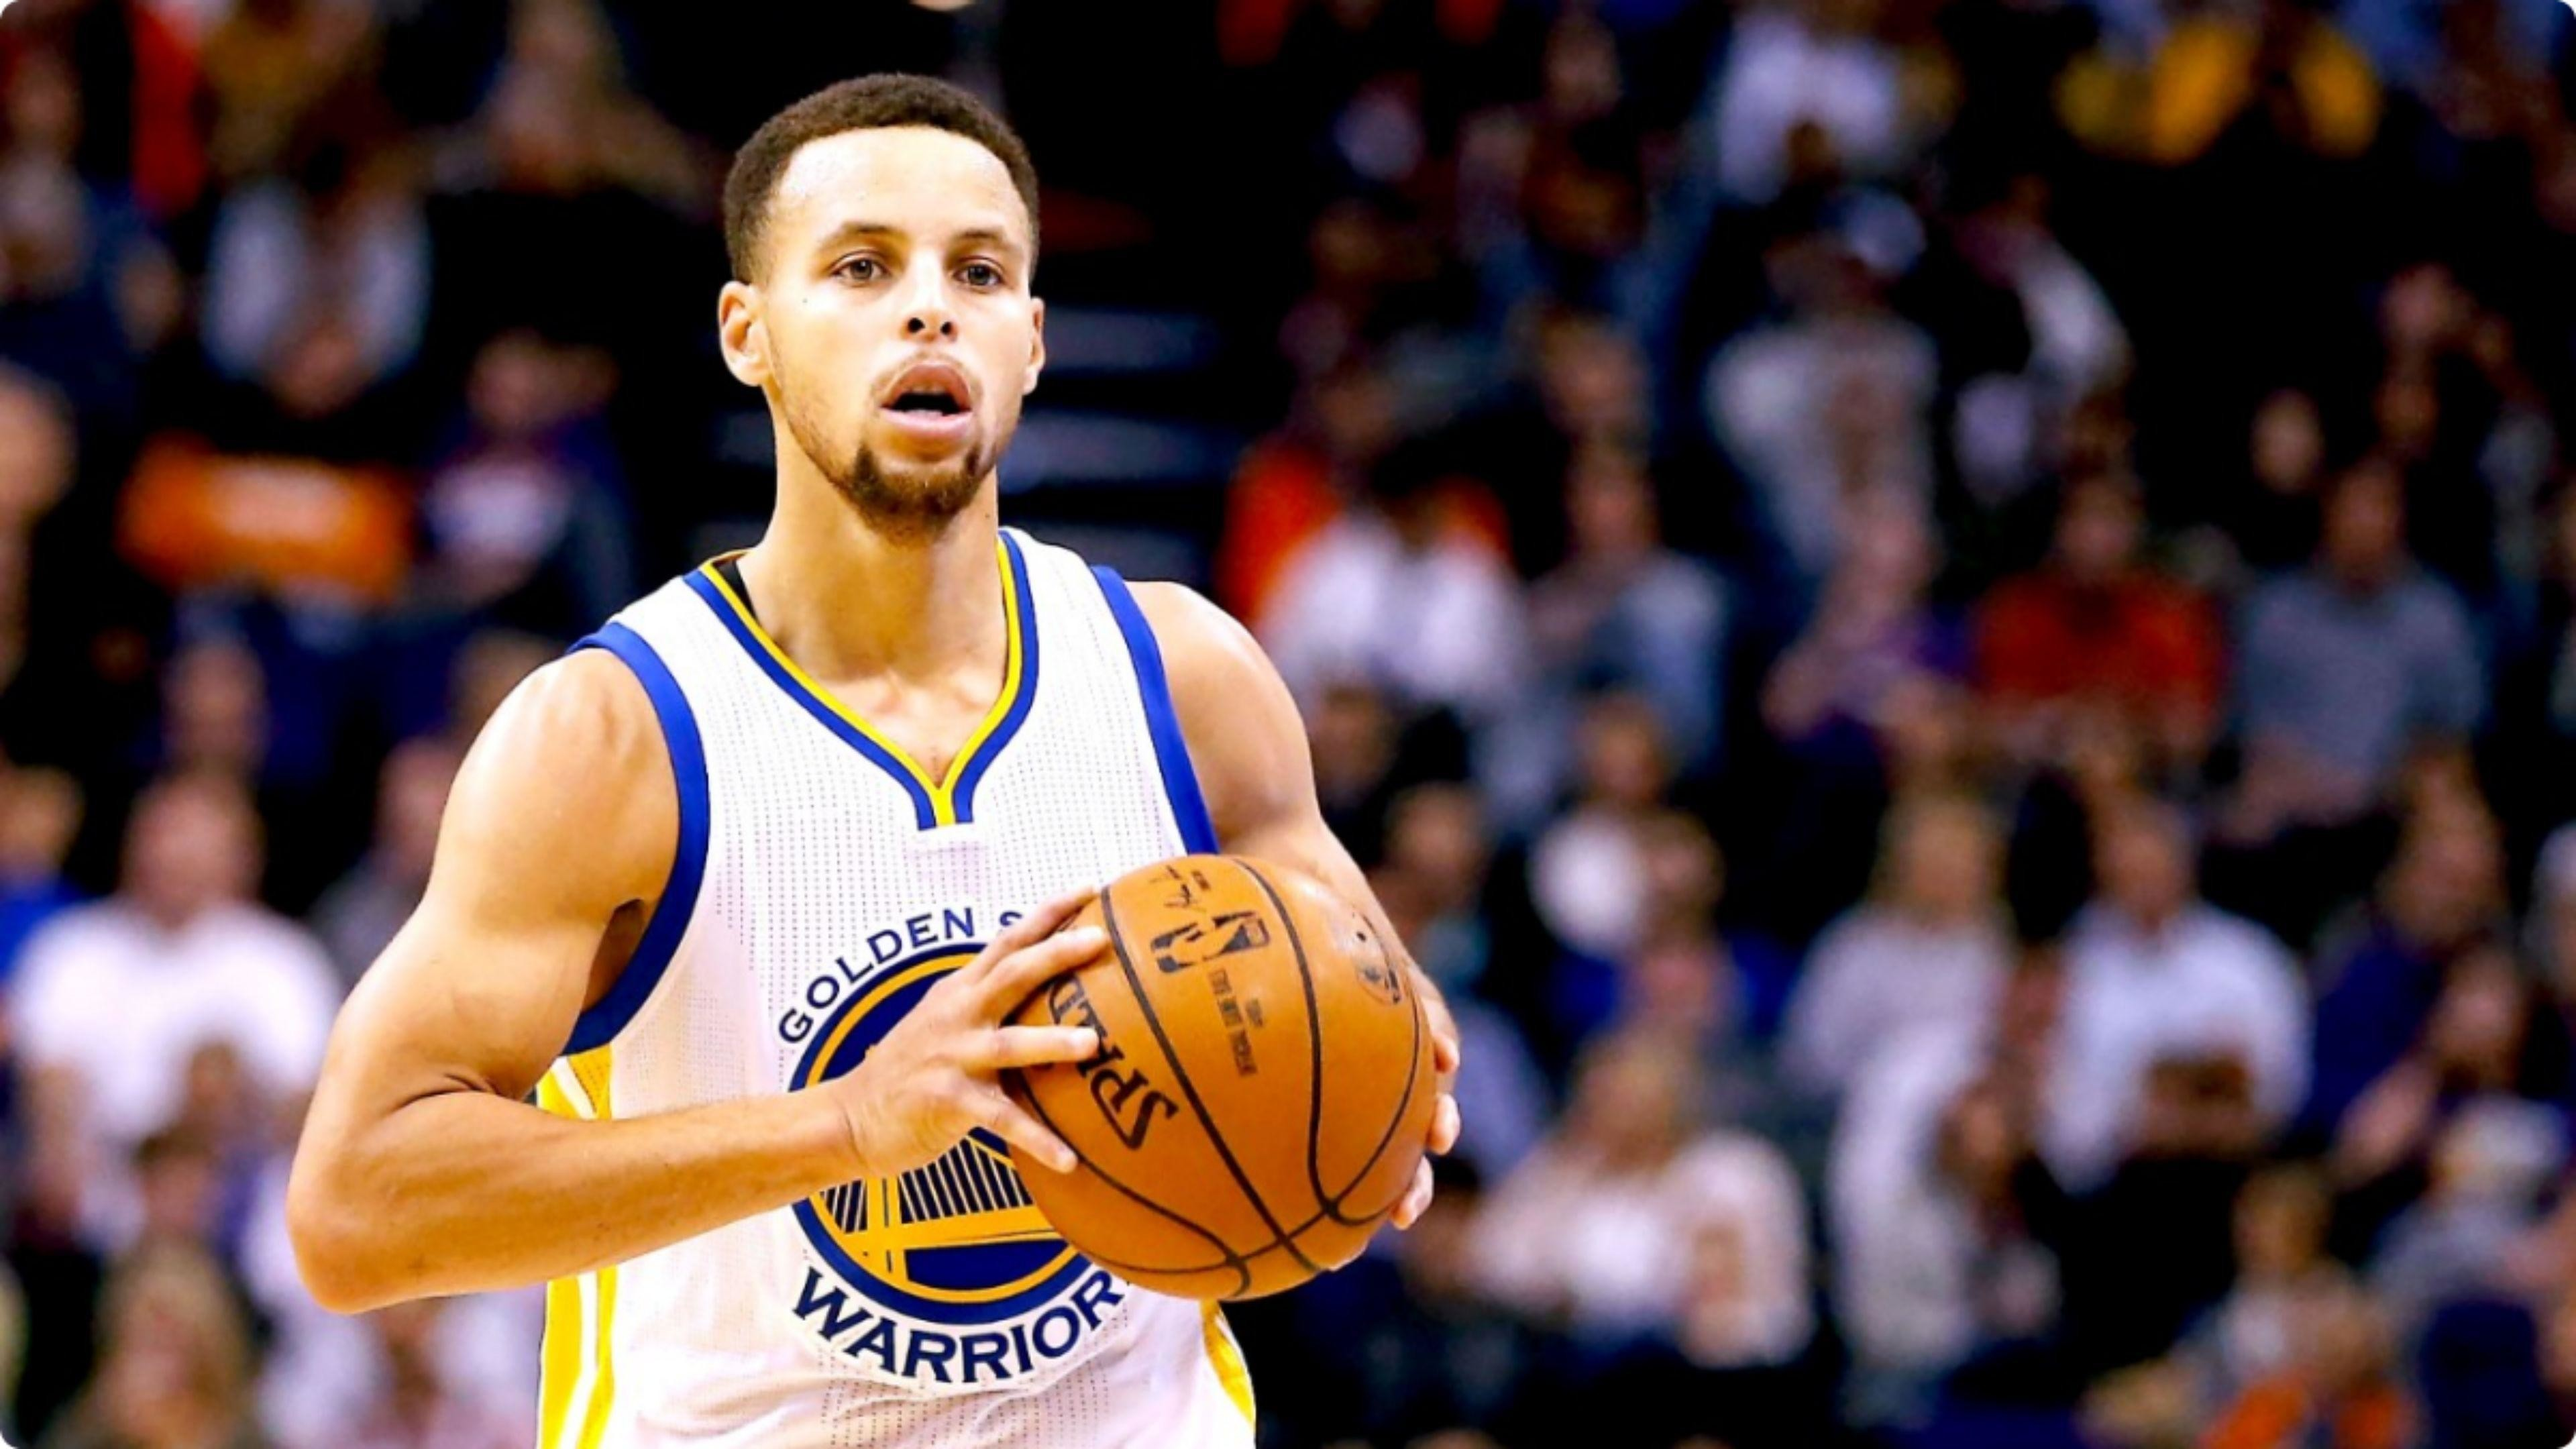 Nba Wallpaper Stephen Curry: Stephen Curry Wallpaper HD 2018 (78+ Images